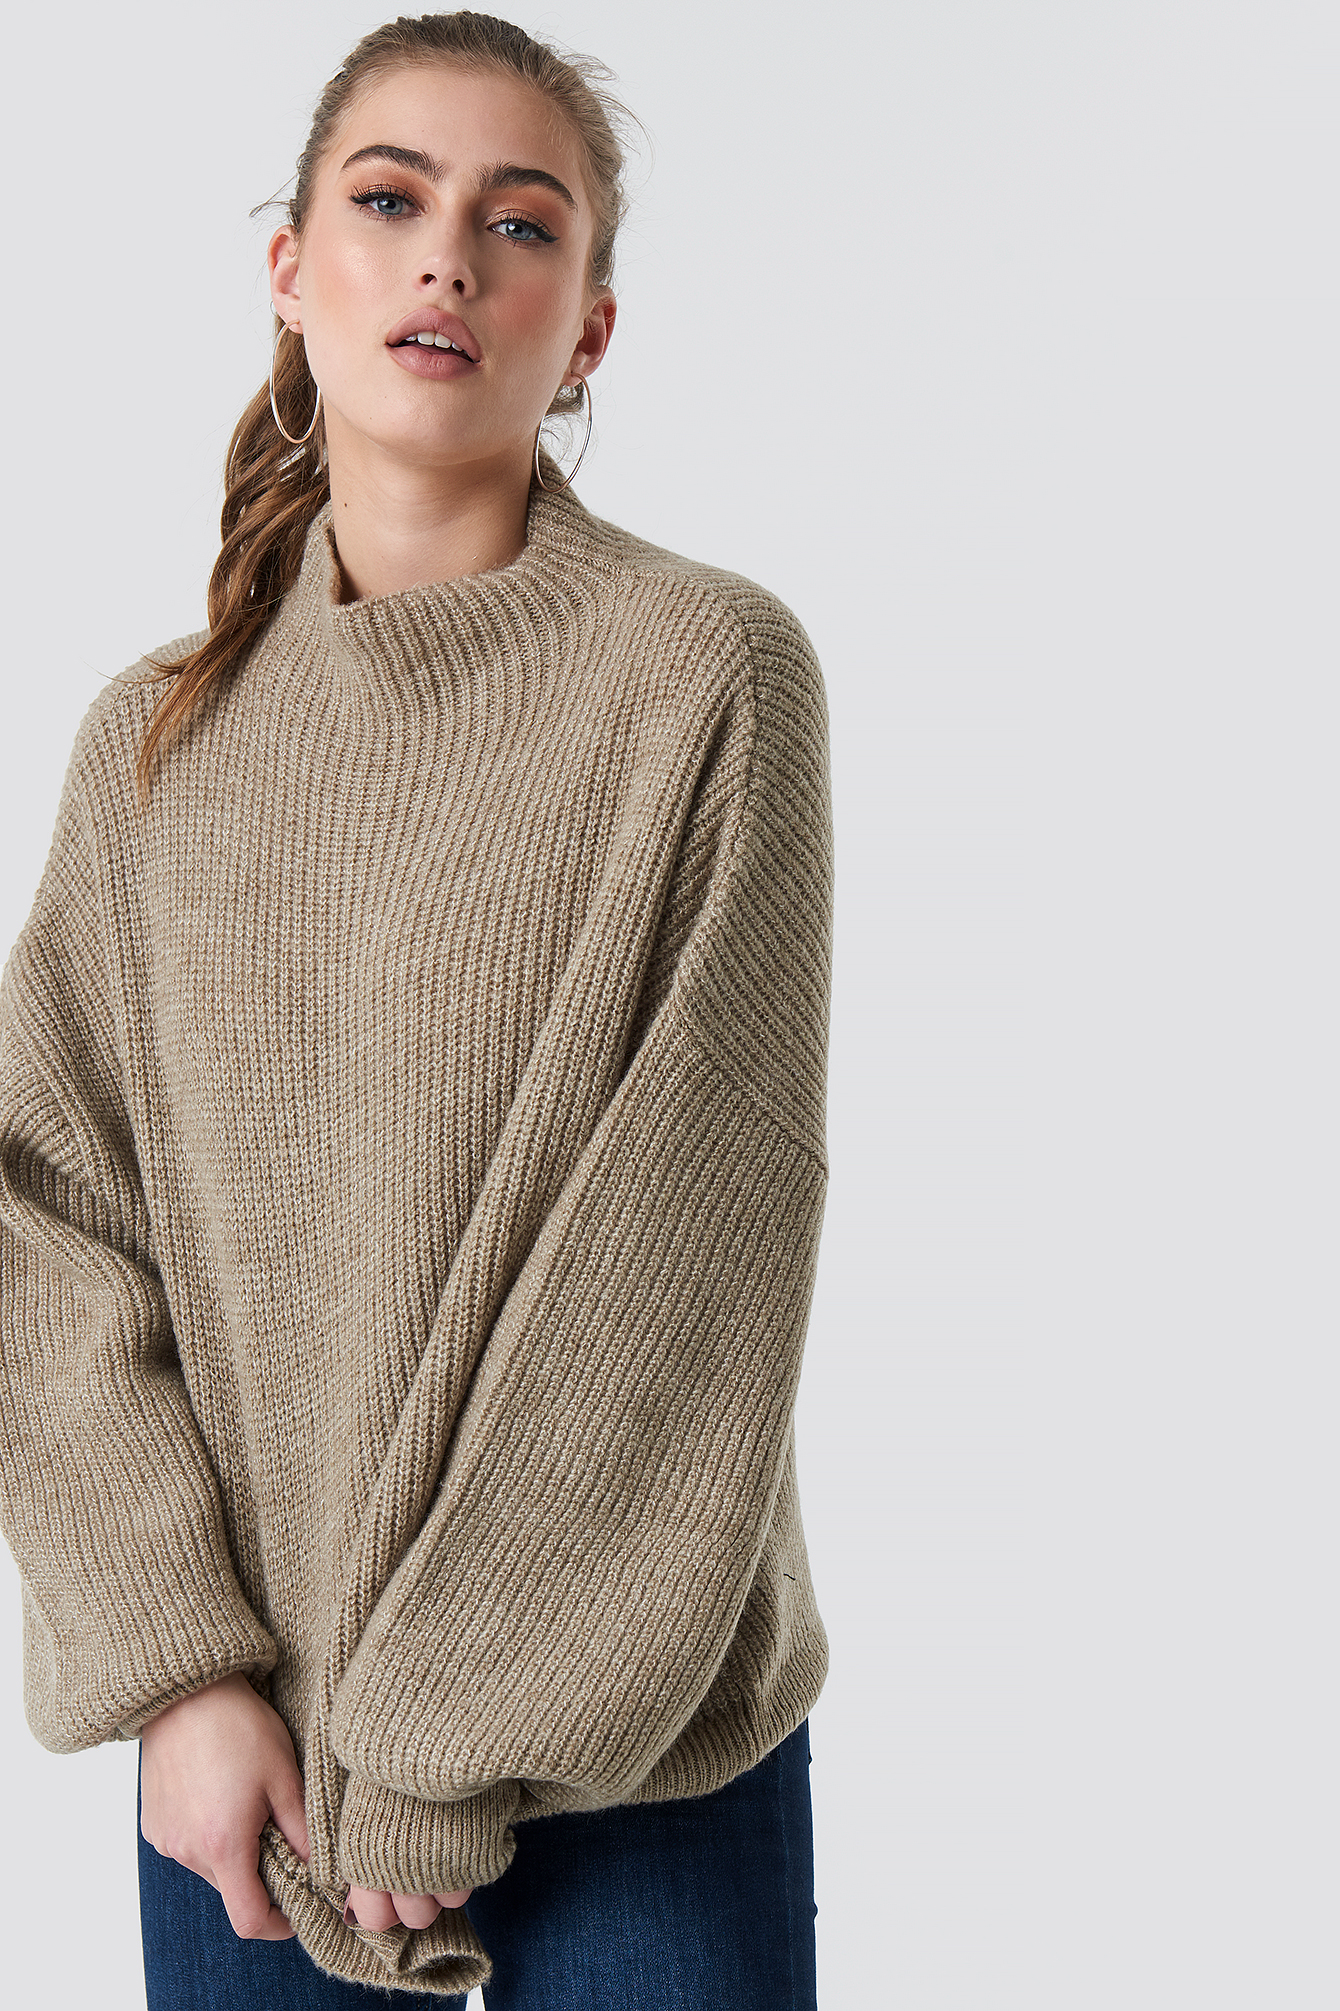 statement by na-kd influencers -  Jennifer Andersson Knitted Sweater - Beige